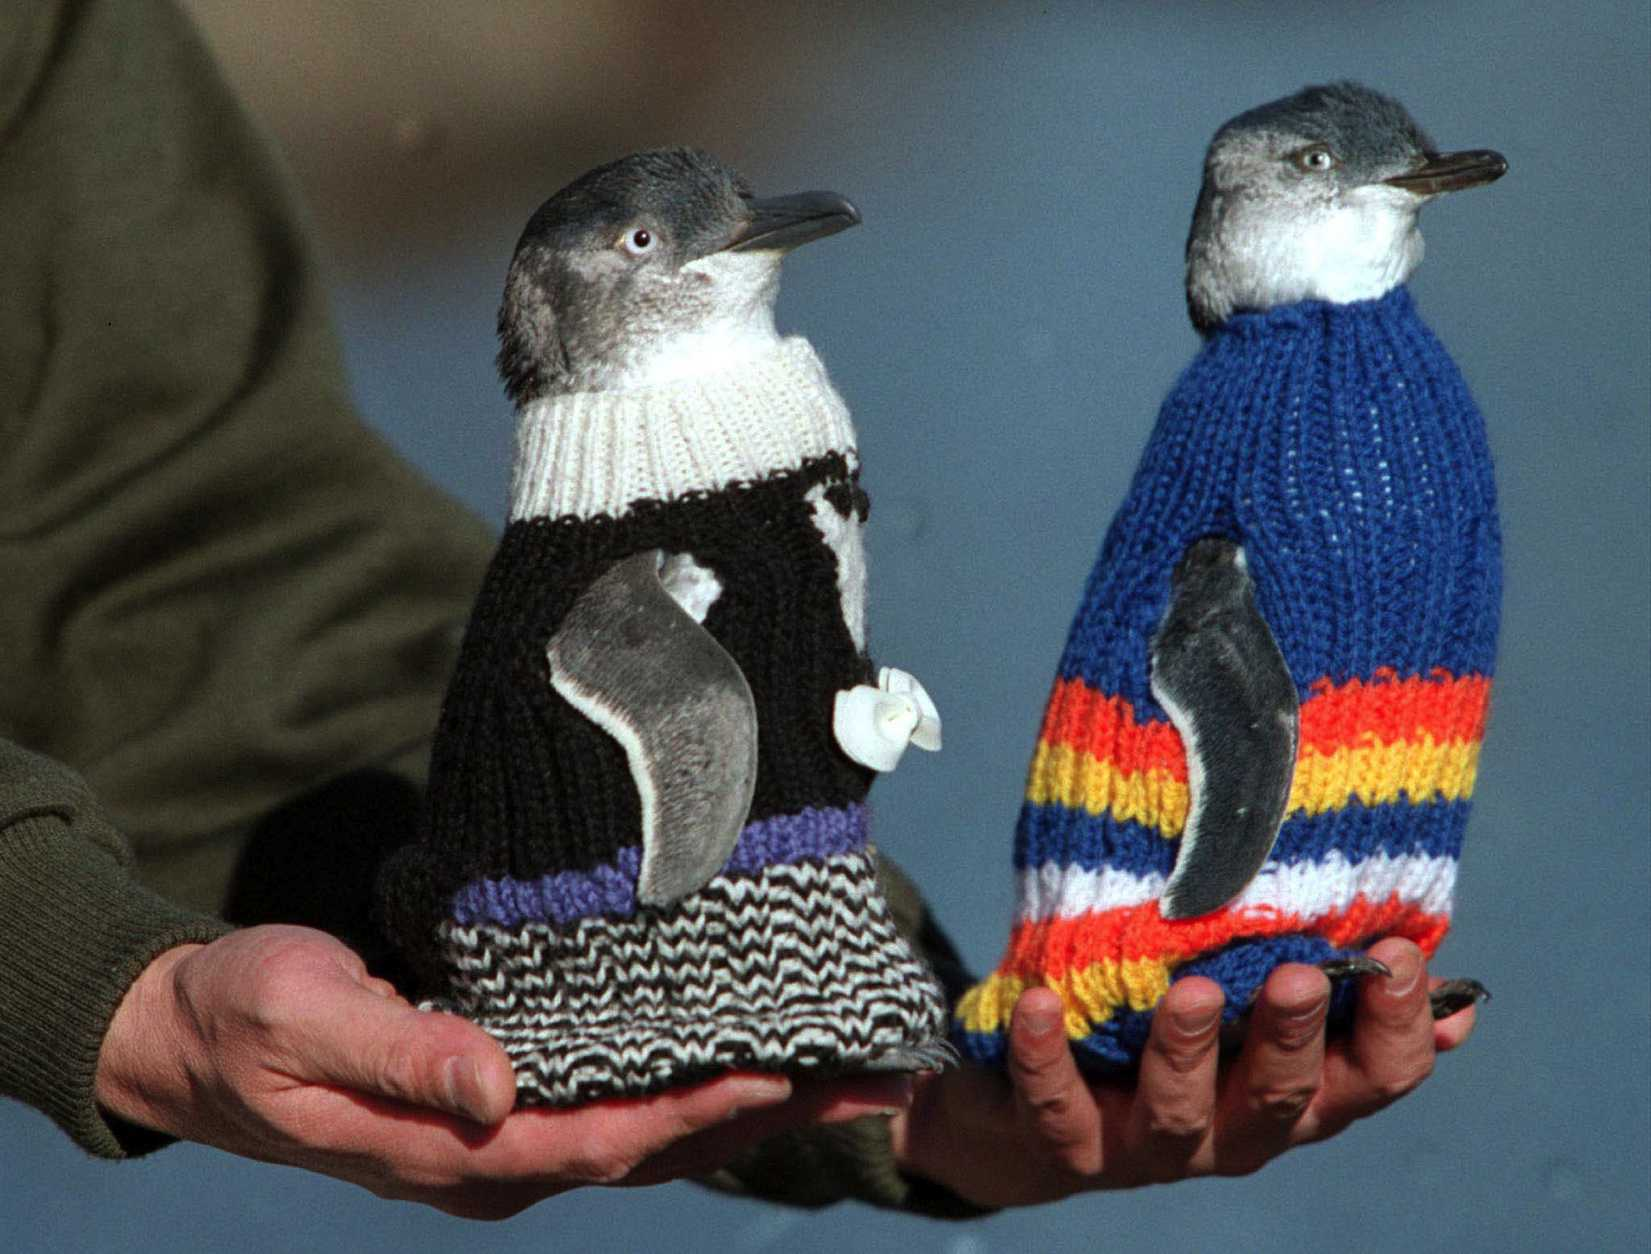 Penguin mannequins model newly-knitted protective woollen coats in Launceston, Tasmania May 22, 2001.